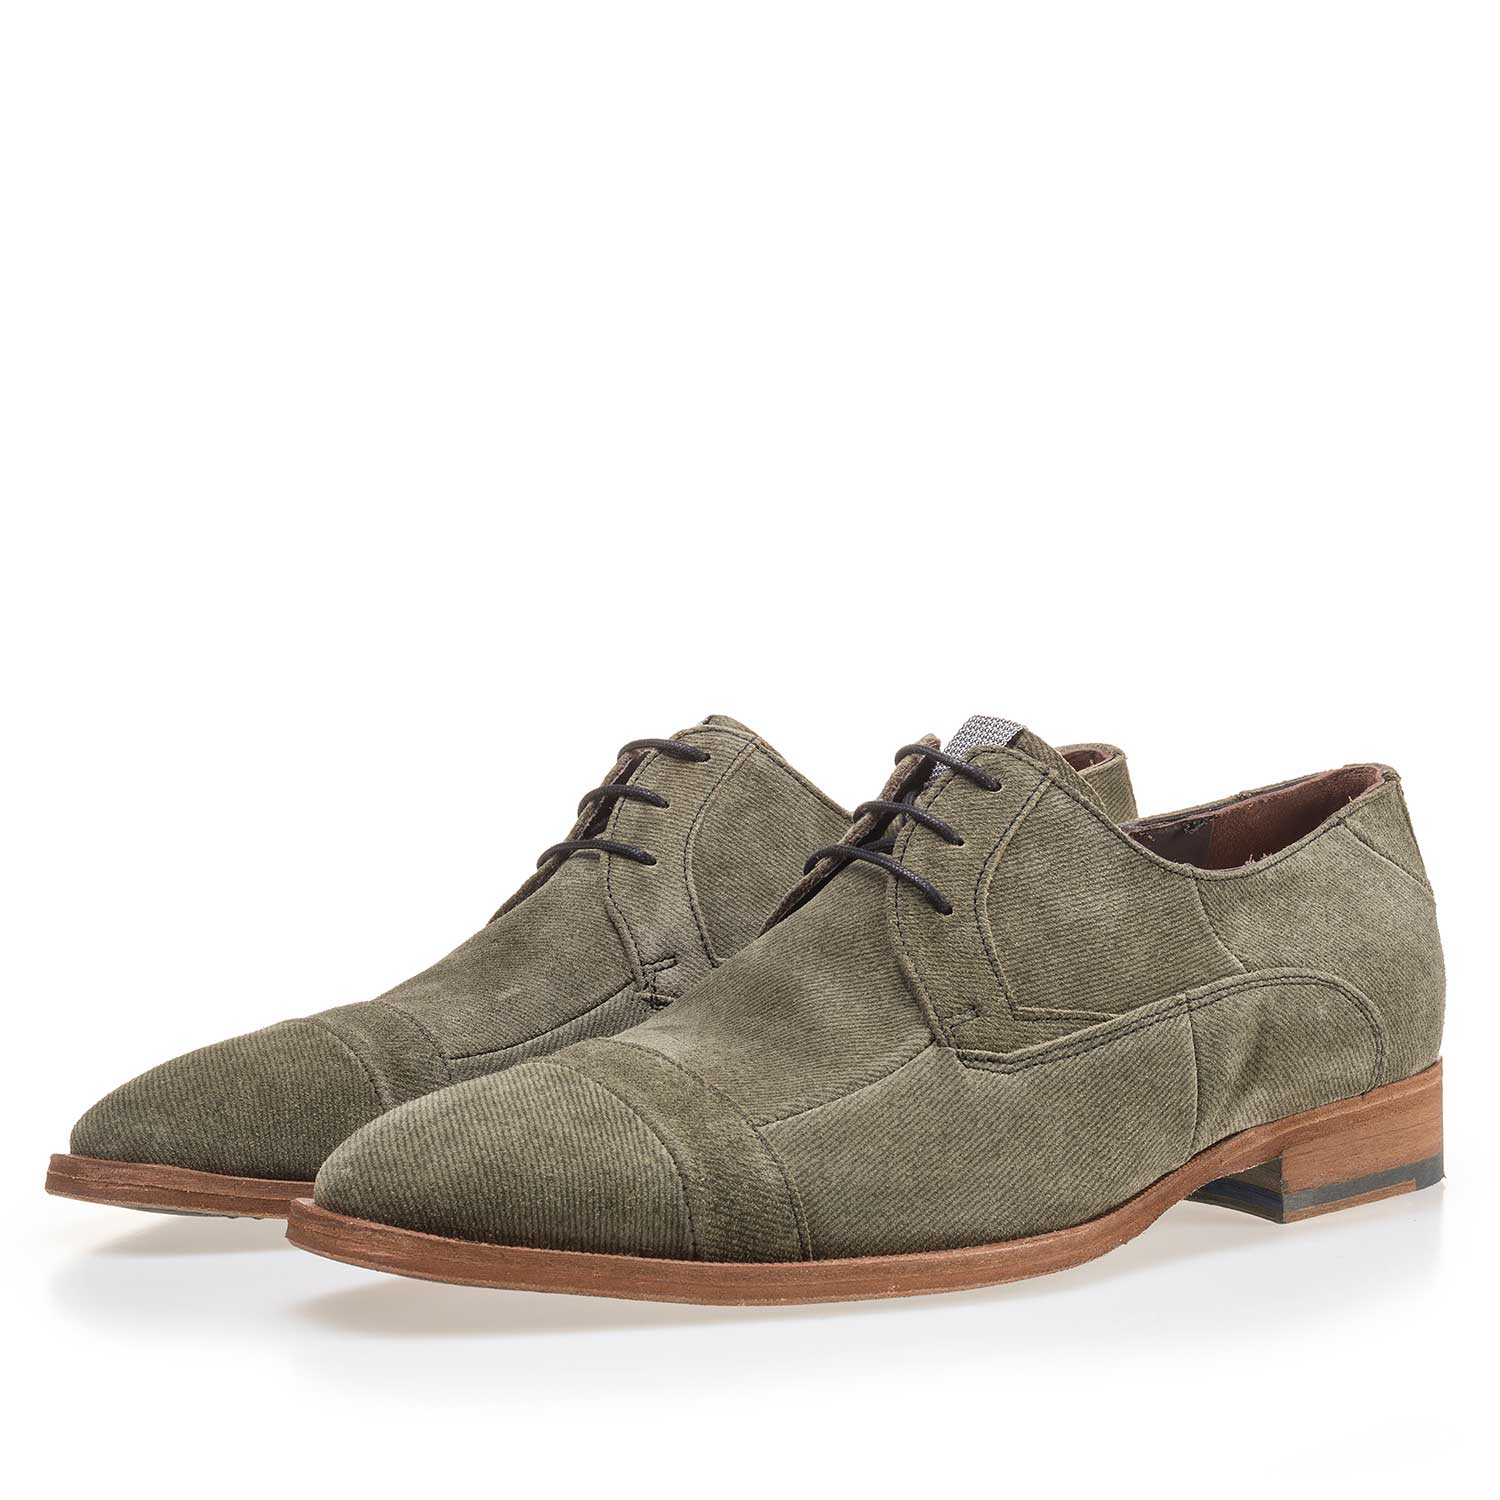 14136/00 - Olive green suede leather lace shoe